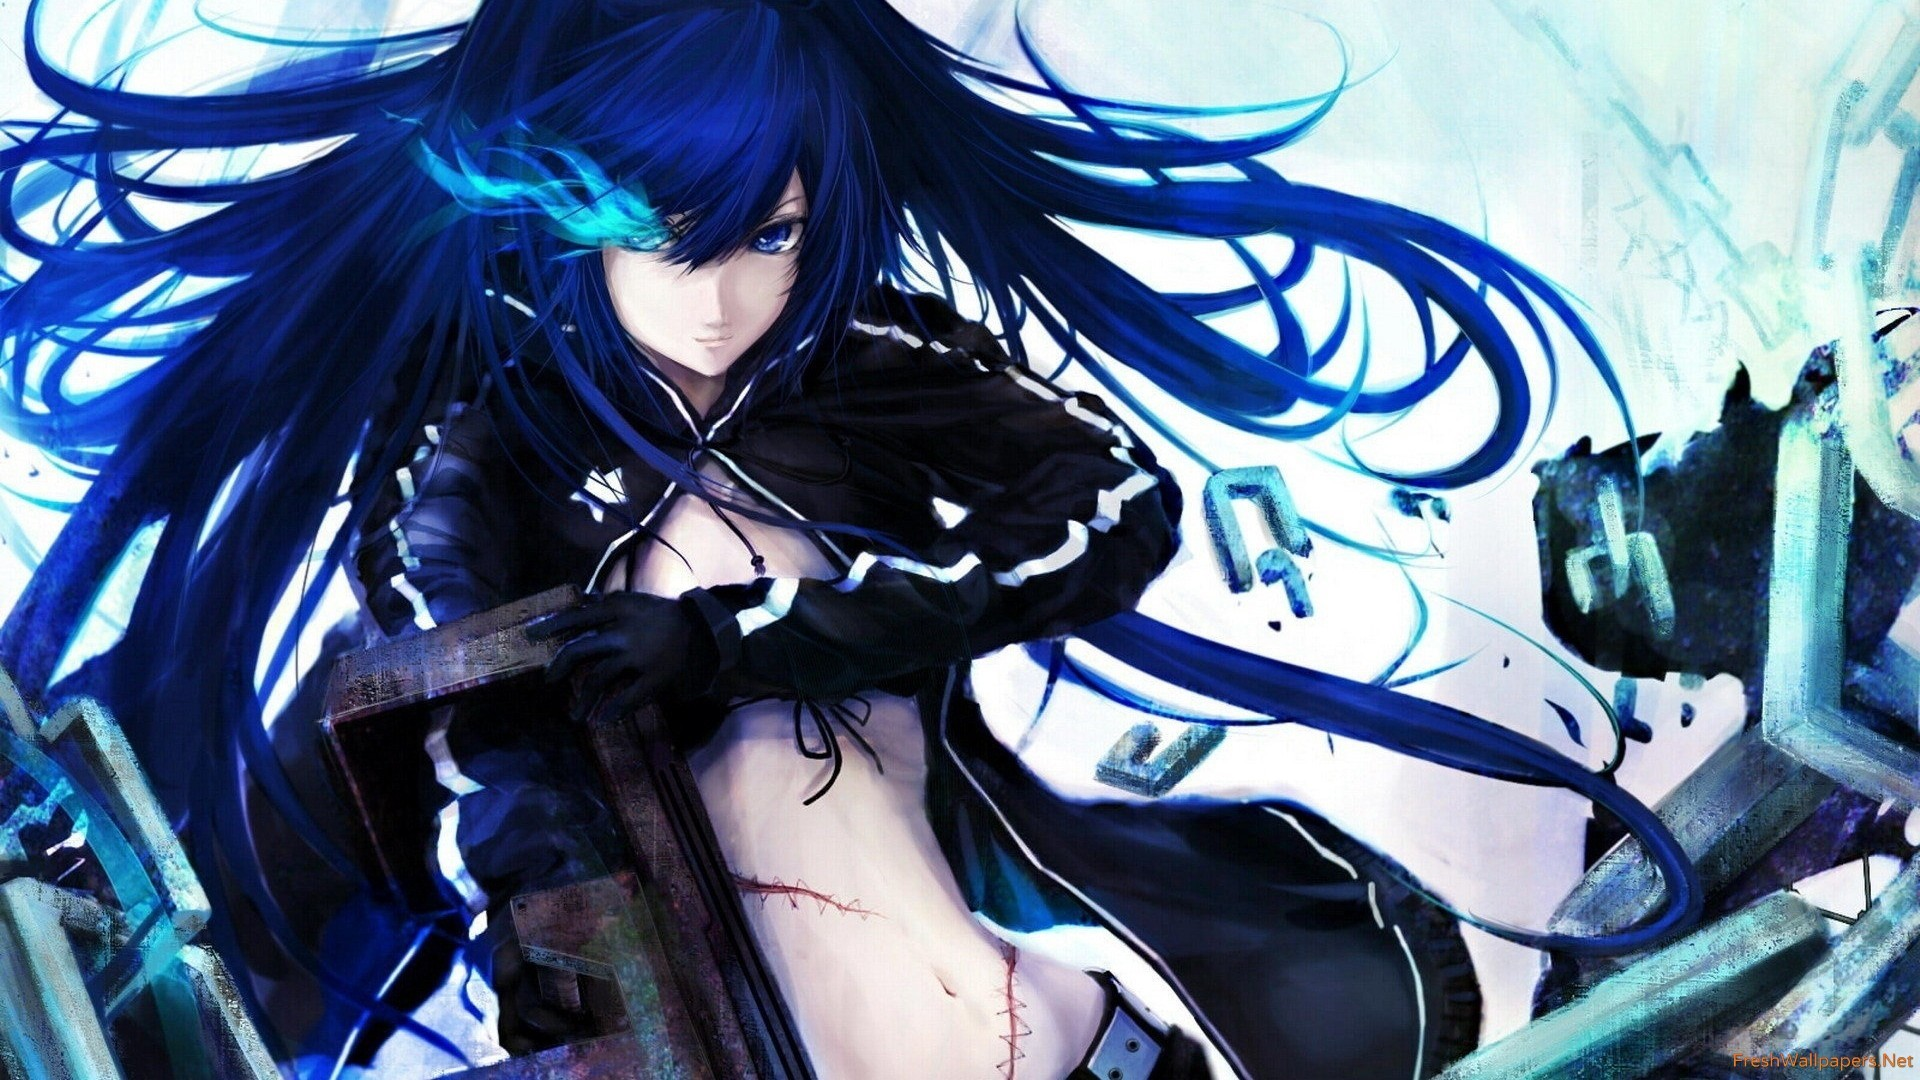 Anime gamer wallpaper 71 images - Blue anime wallpaper ...